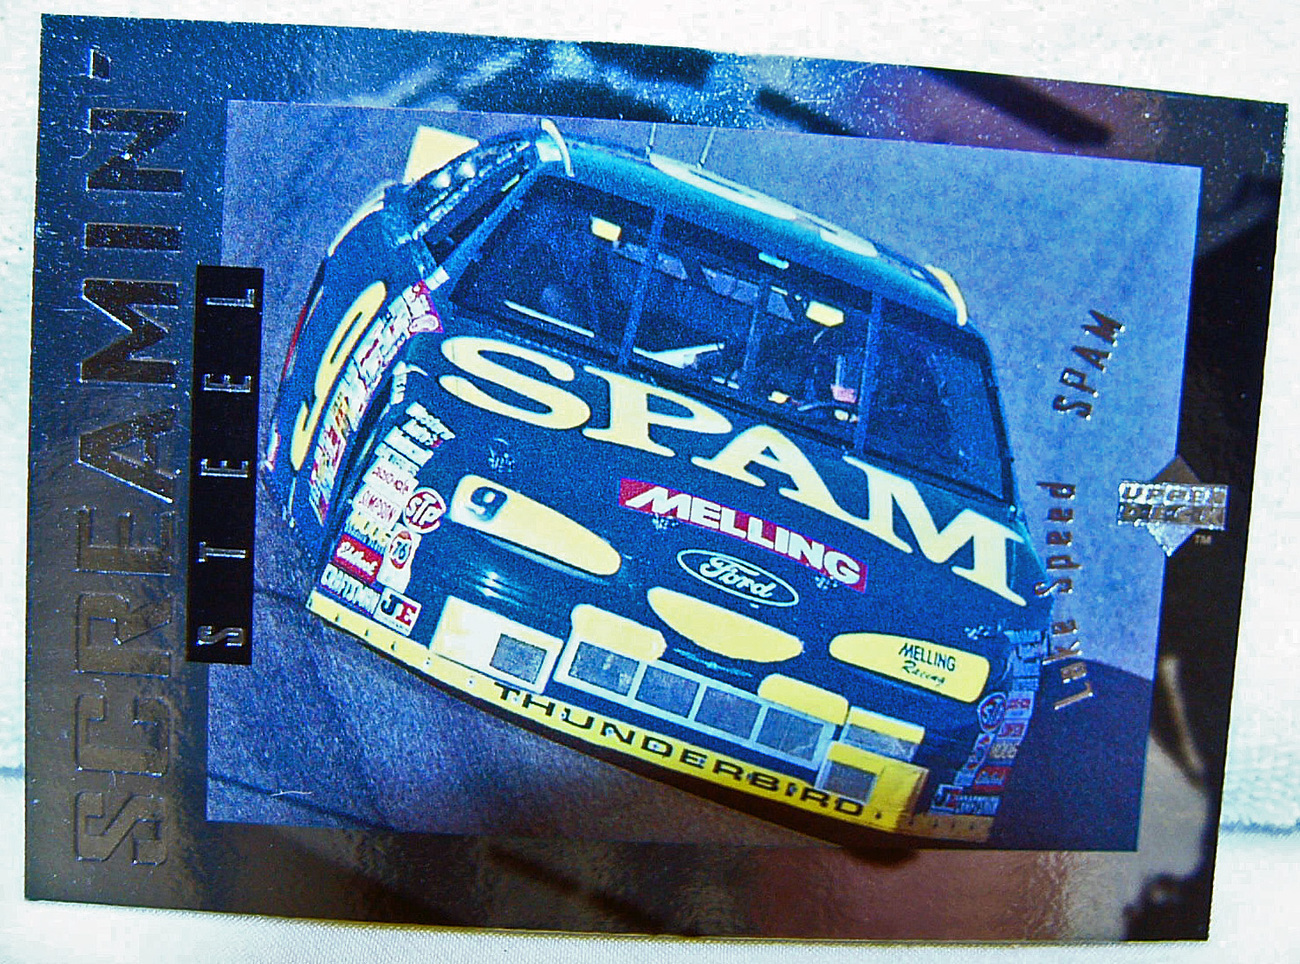 1996 NASCAR Lake Speed SPAM Card RC71